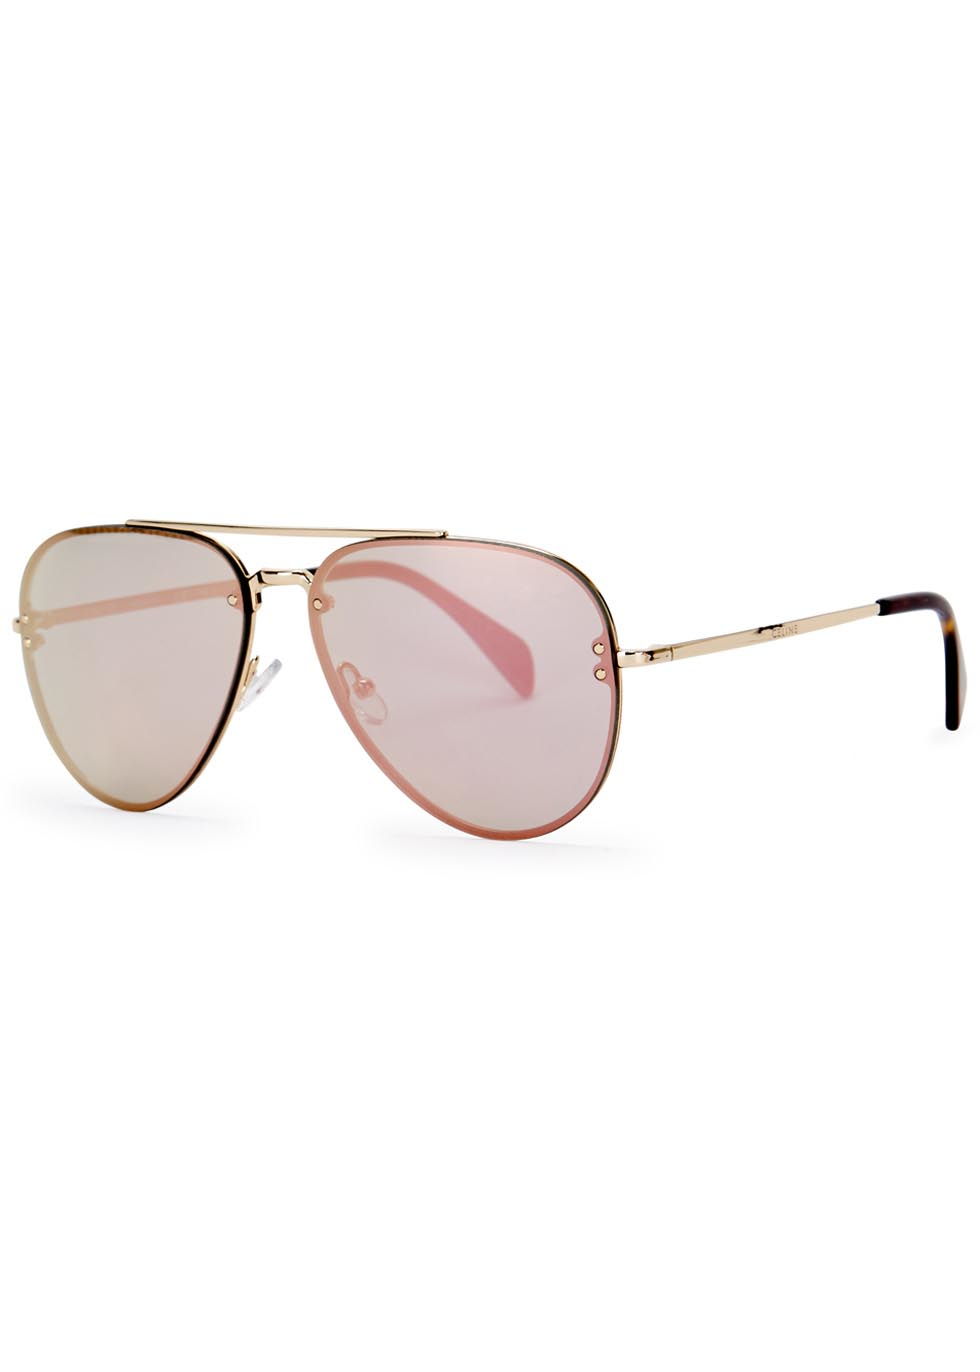 Celine Gold Frame Sunglasses : Celine Iridescent Aviator-style Sunglasses in Metallic for ...